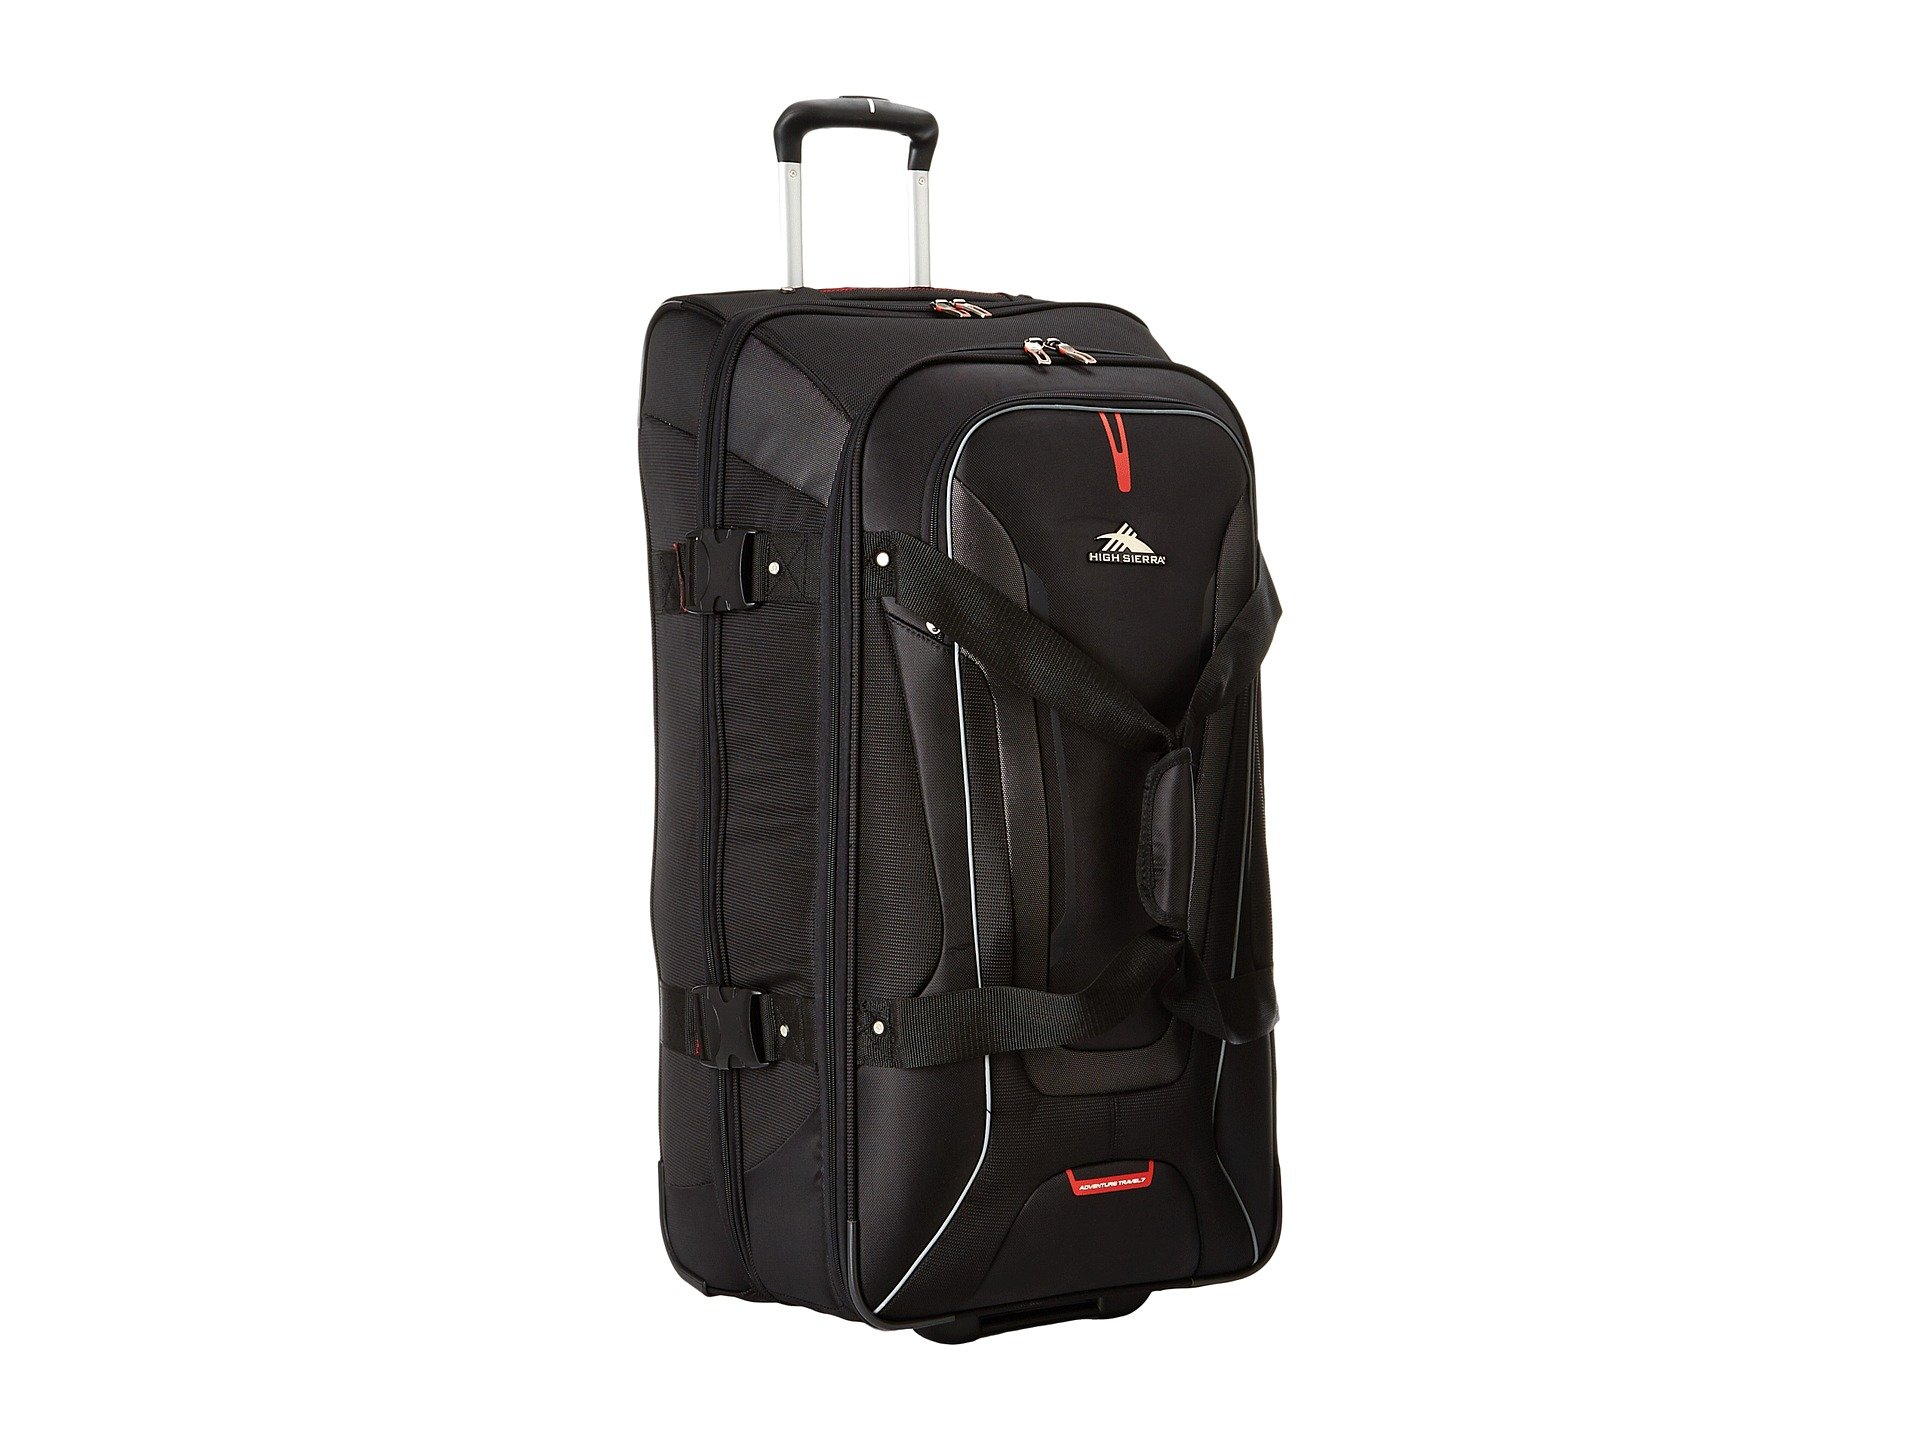 High Sierra 57020-1041 AT7 Wheeled Duffel with Backpack Straps, Black, 32-Inch